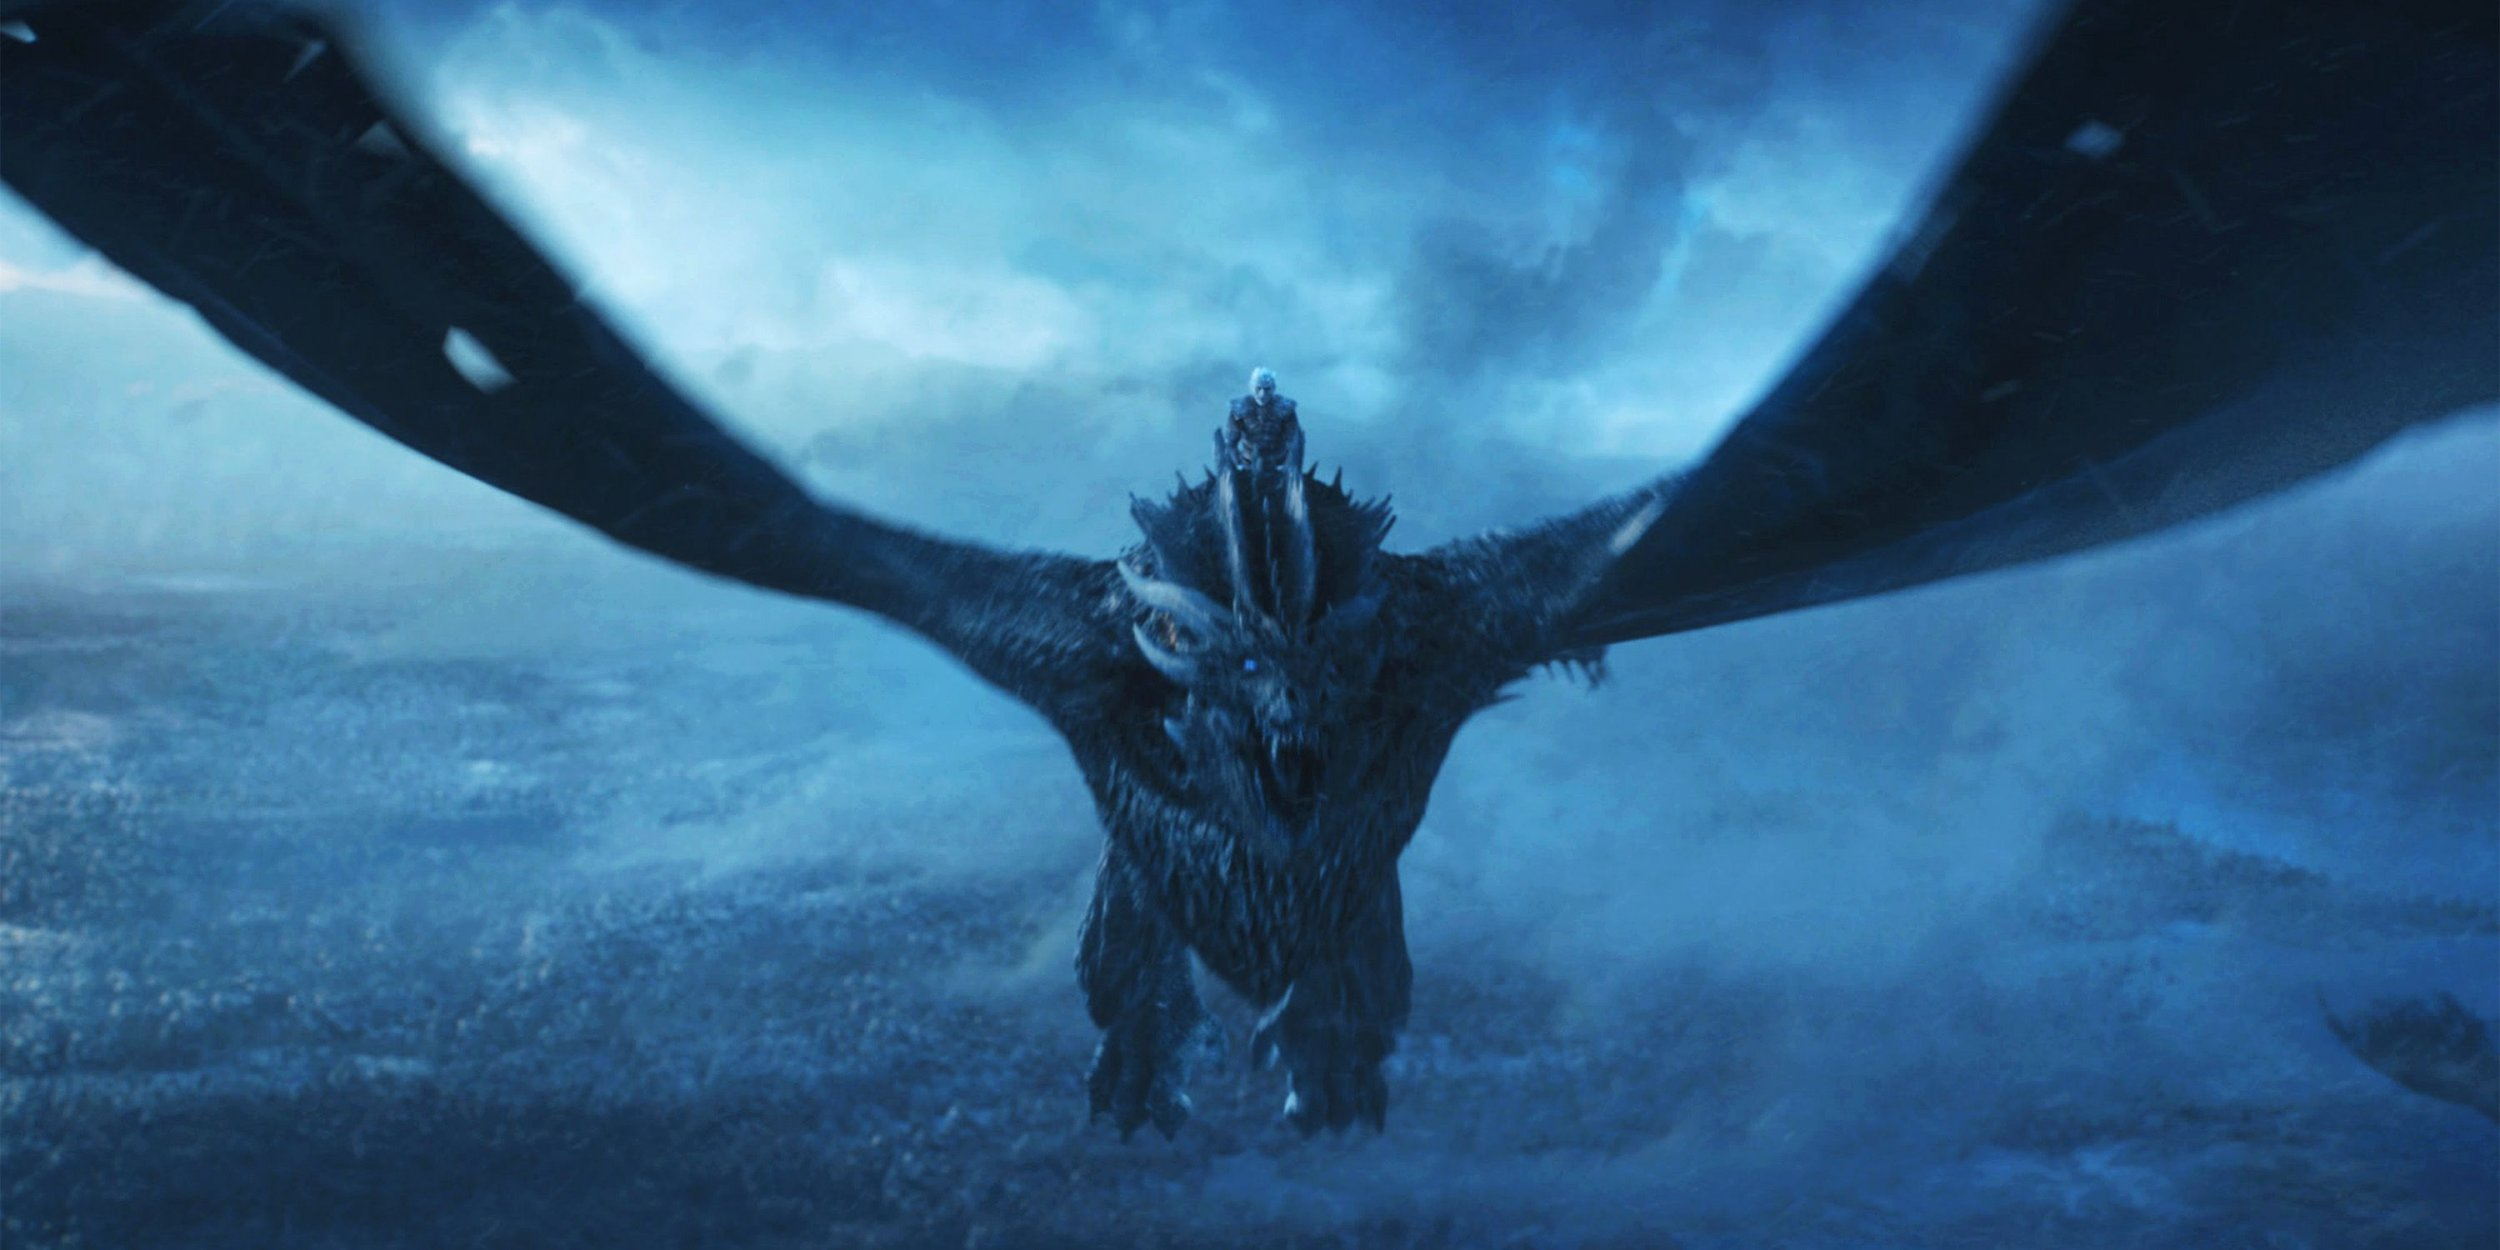 Hbo Game Of Thrones Night King Ice Dragon - Game Of Thrones Night King Dragon - HD Wallpaper